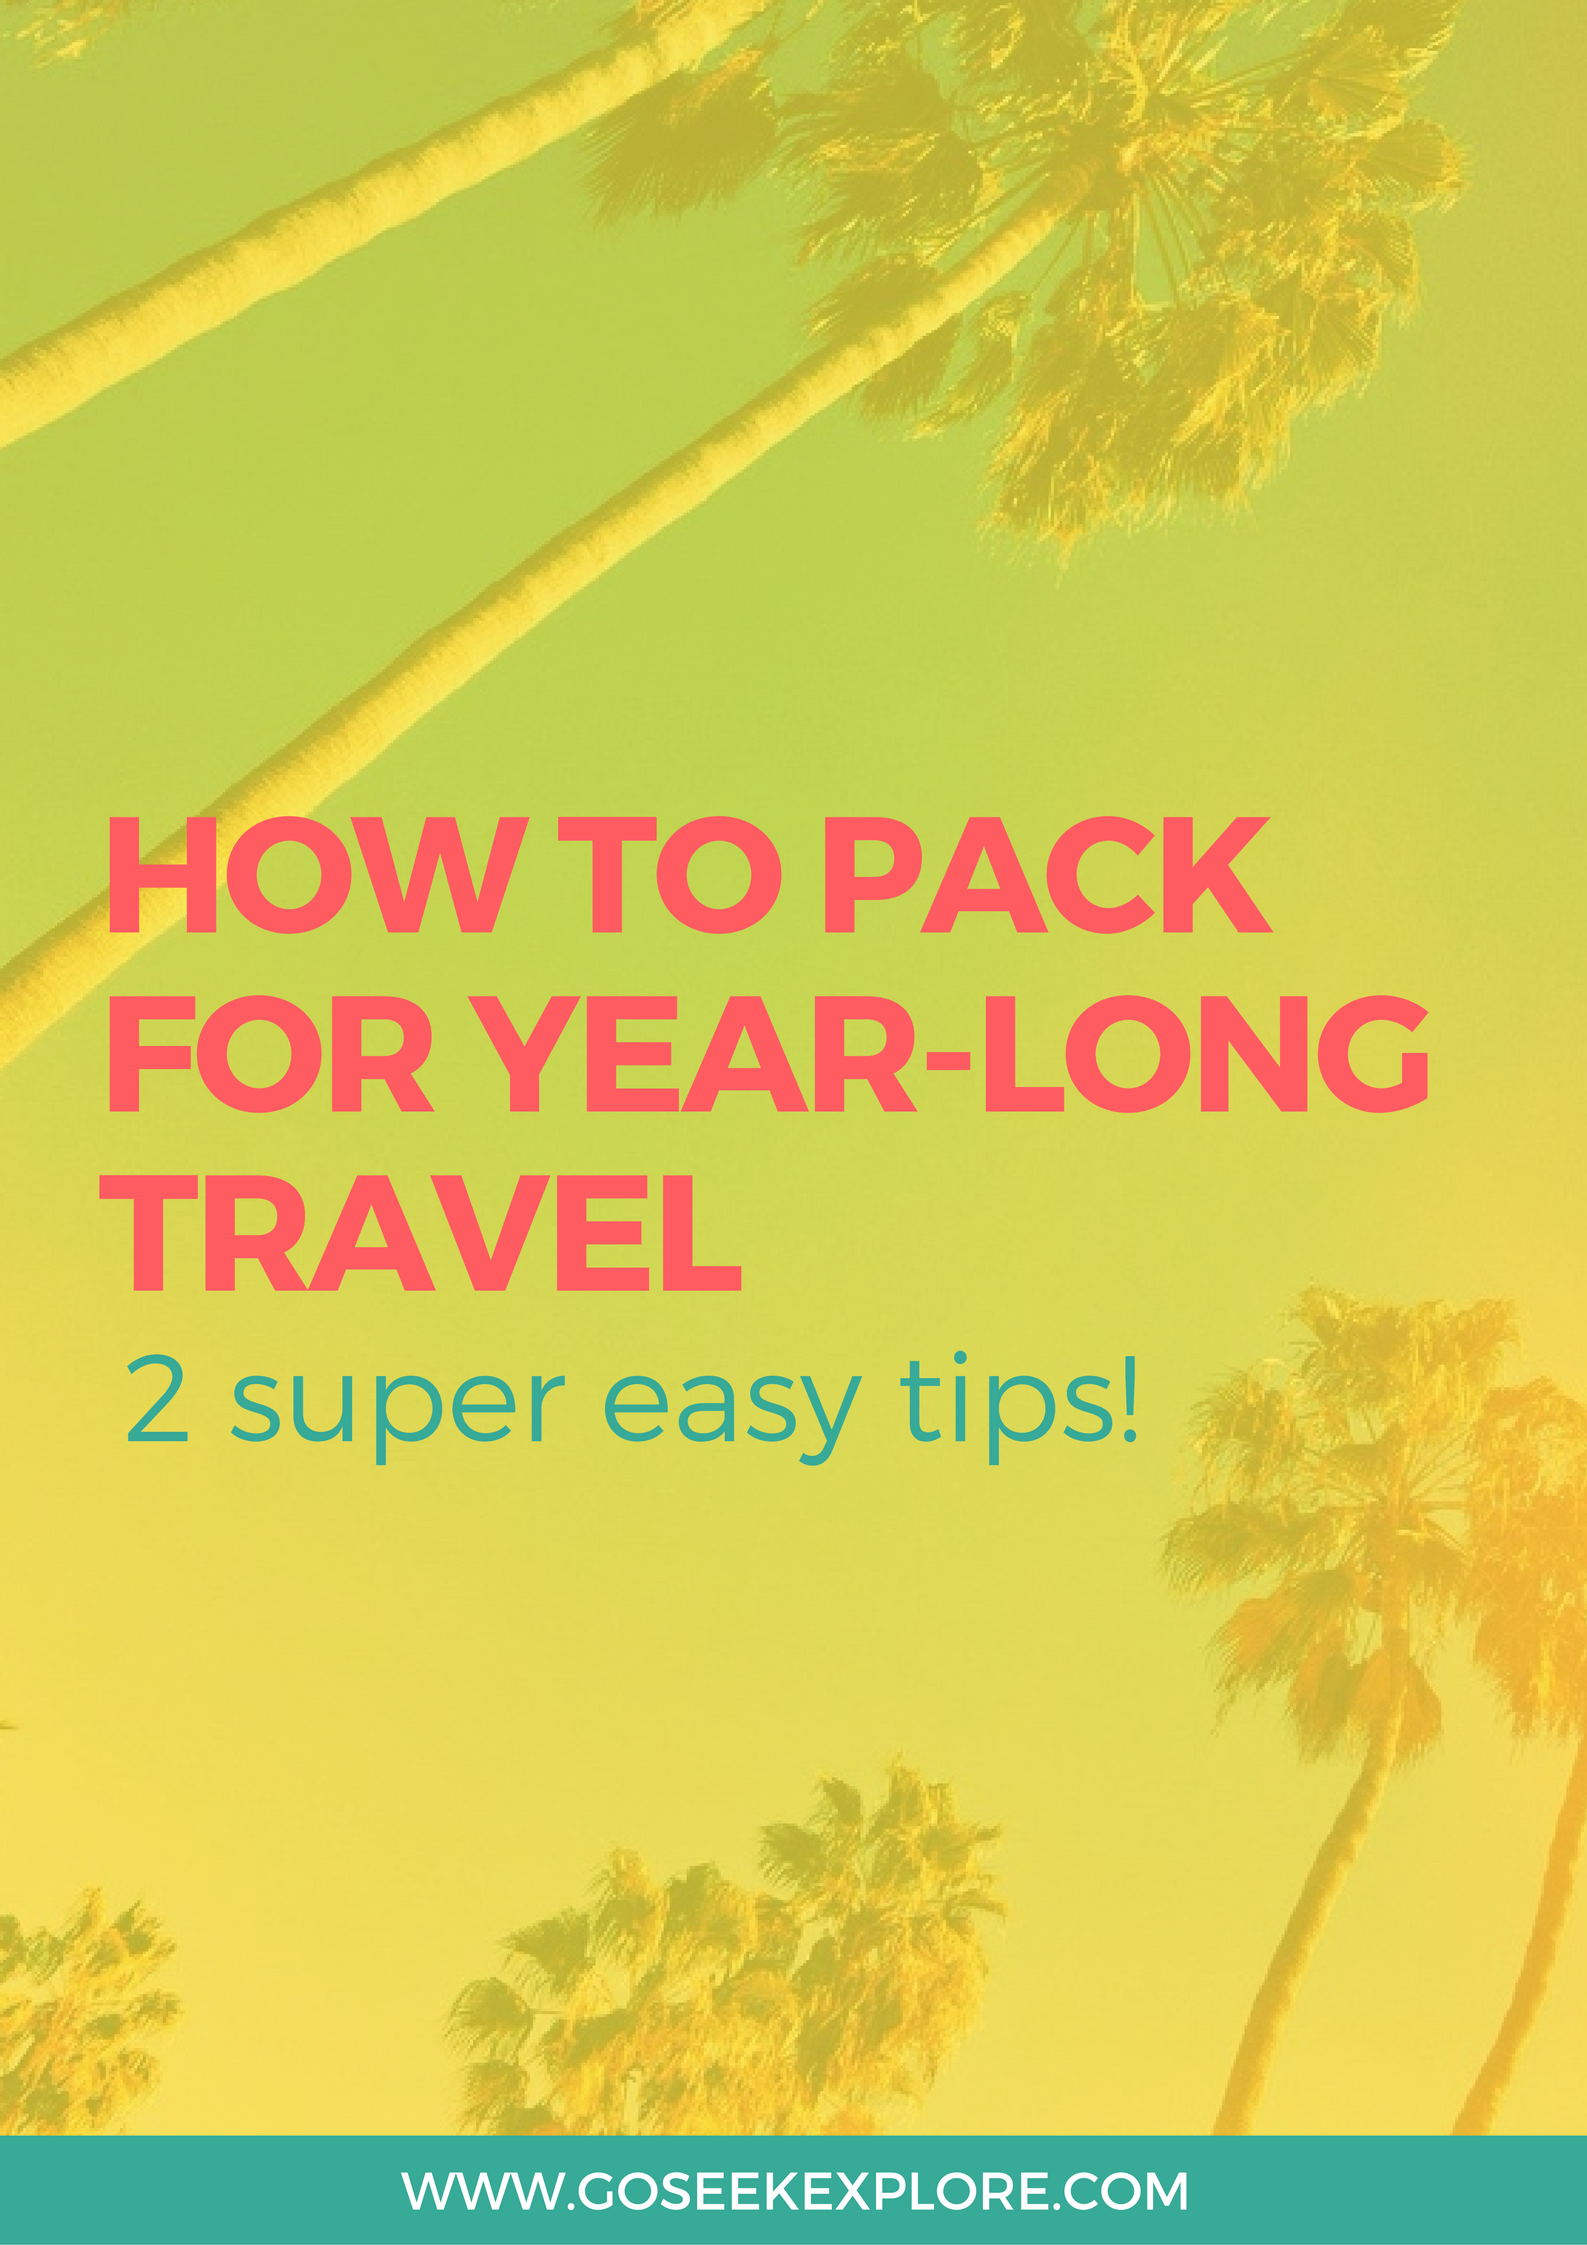 This post has 2 tricks to make packing for year-long travel SO much easier.